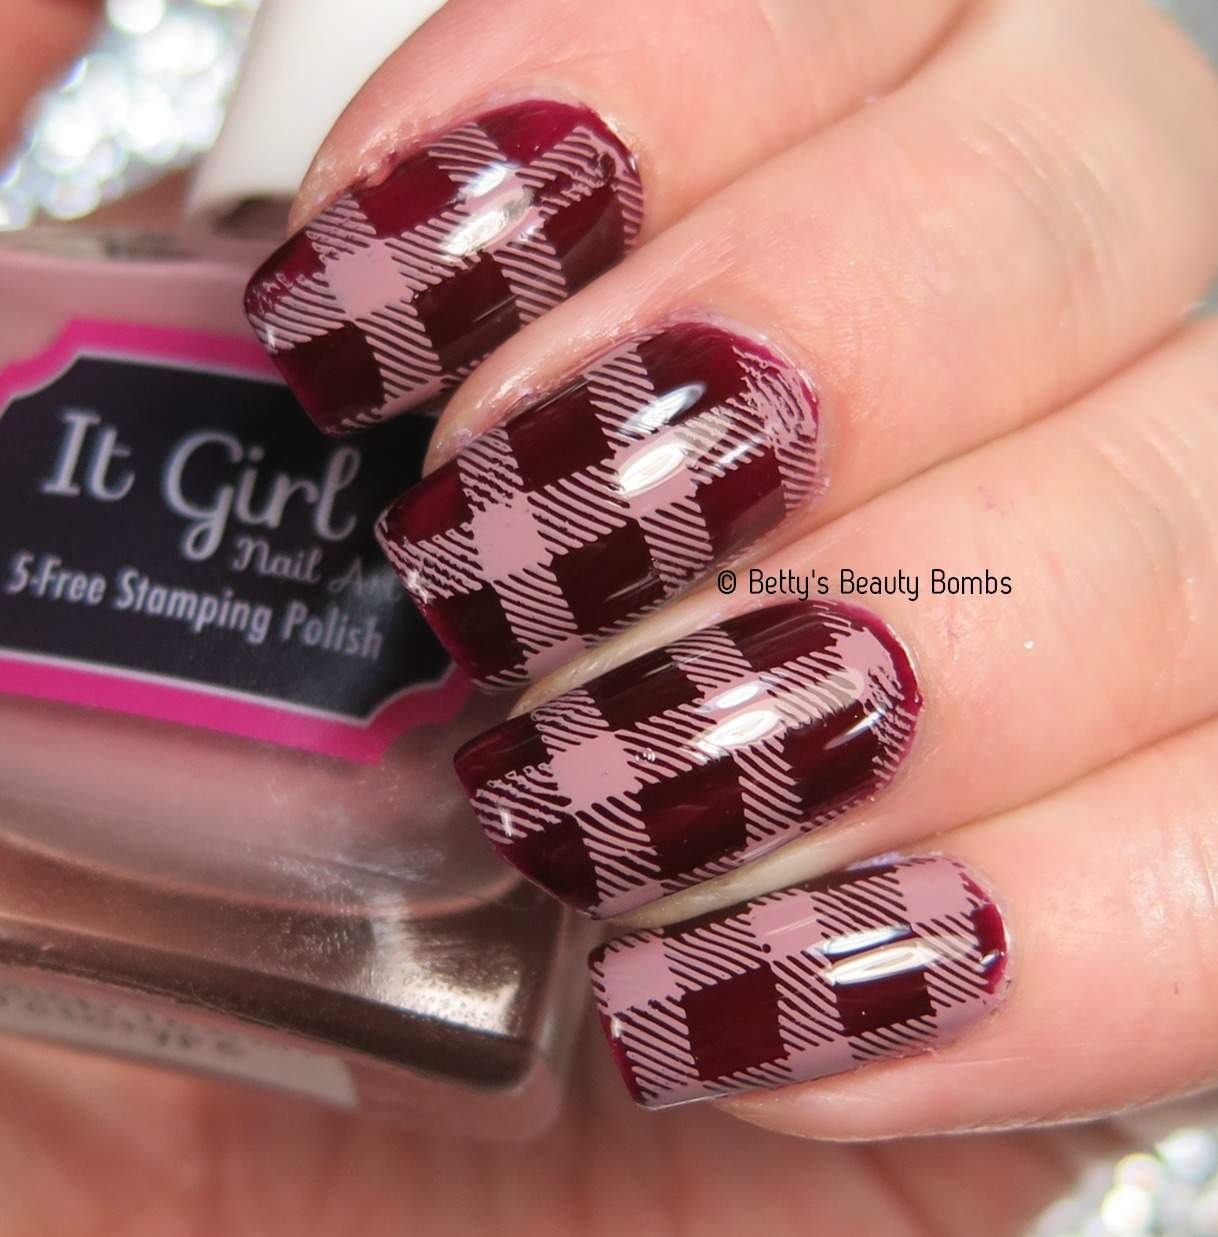 Unusual Nail Polish To Wear With Red Dress Tall Shades Of Purple Nail Polish Clean Cutest Nail Art How To Start My Own Nail Polish Line Youthful Foot Nails Fungus SoftWhere To Buy Opi Gelcolor Nail Polish Plaid Nail Art Stamping   Lazy Betty